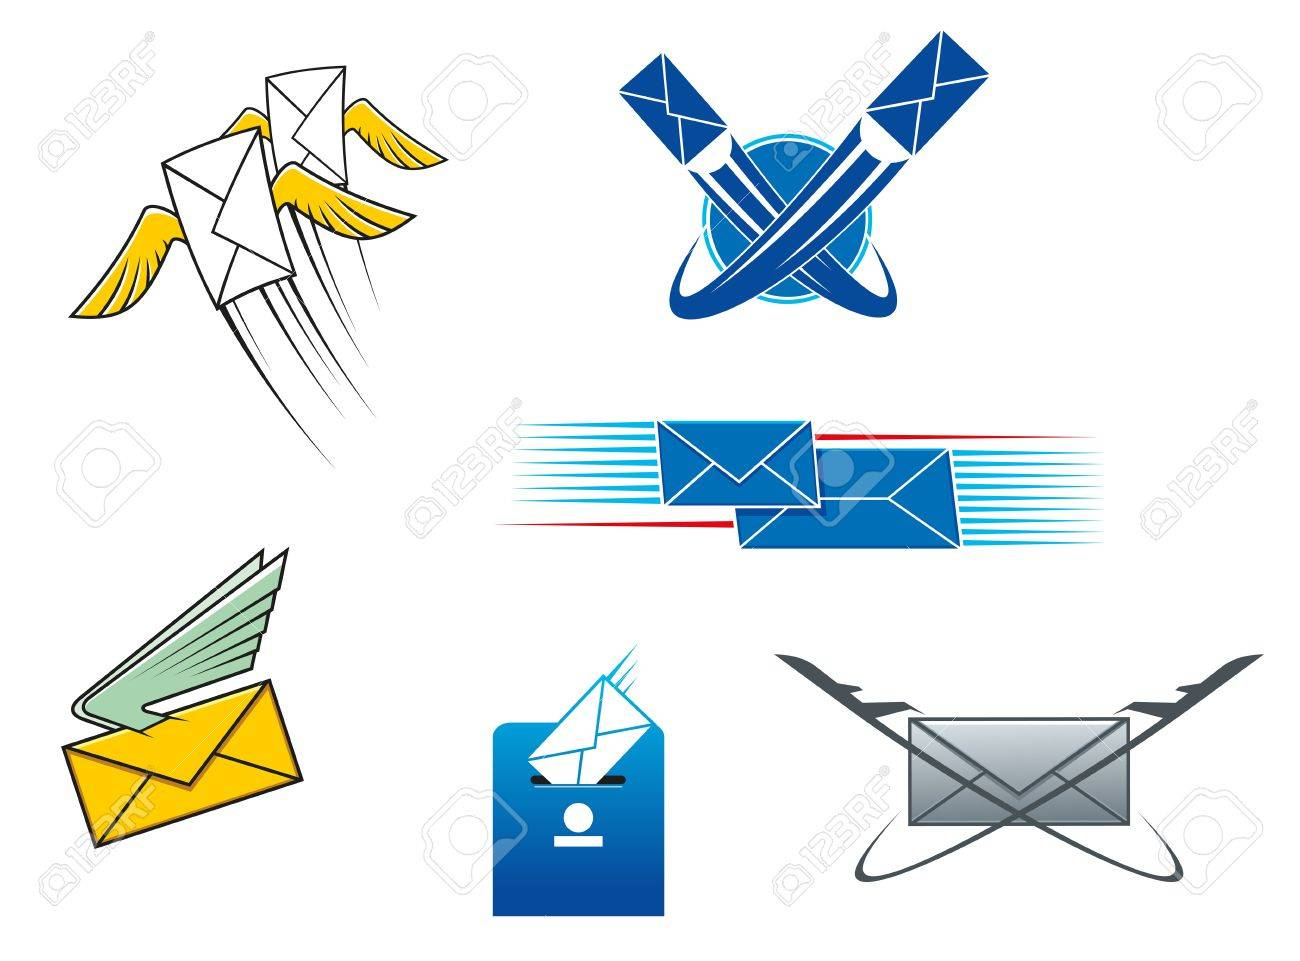 Post mail and letters symbols for postal service concept design post mail and letters symbols for postal service concept design stock vector 20325247 biocorpaavc Gallery